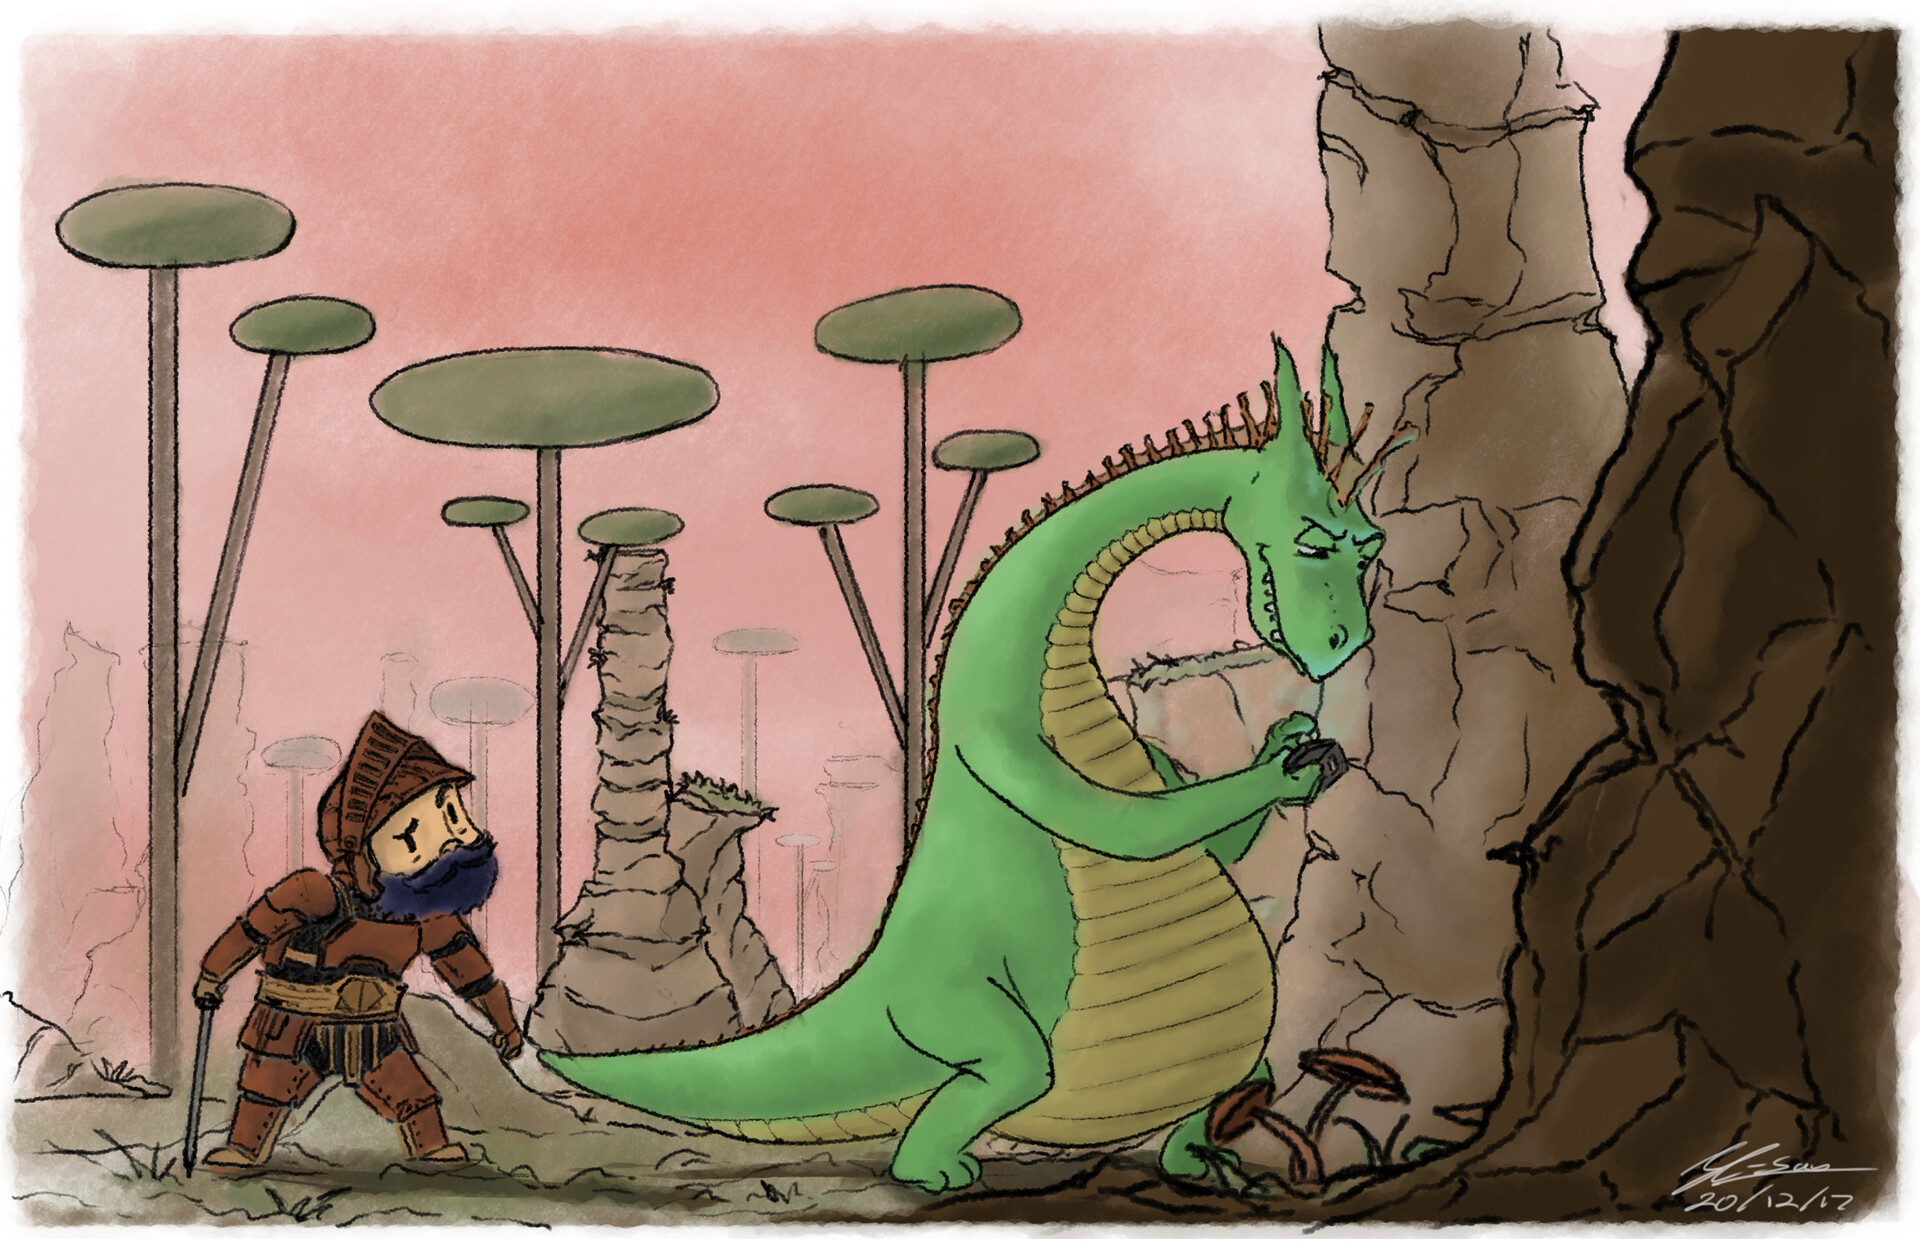 seriously...Dragon?  Because Smartphones would even distract a dragon.